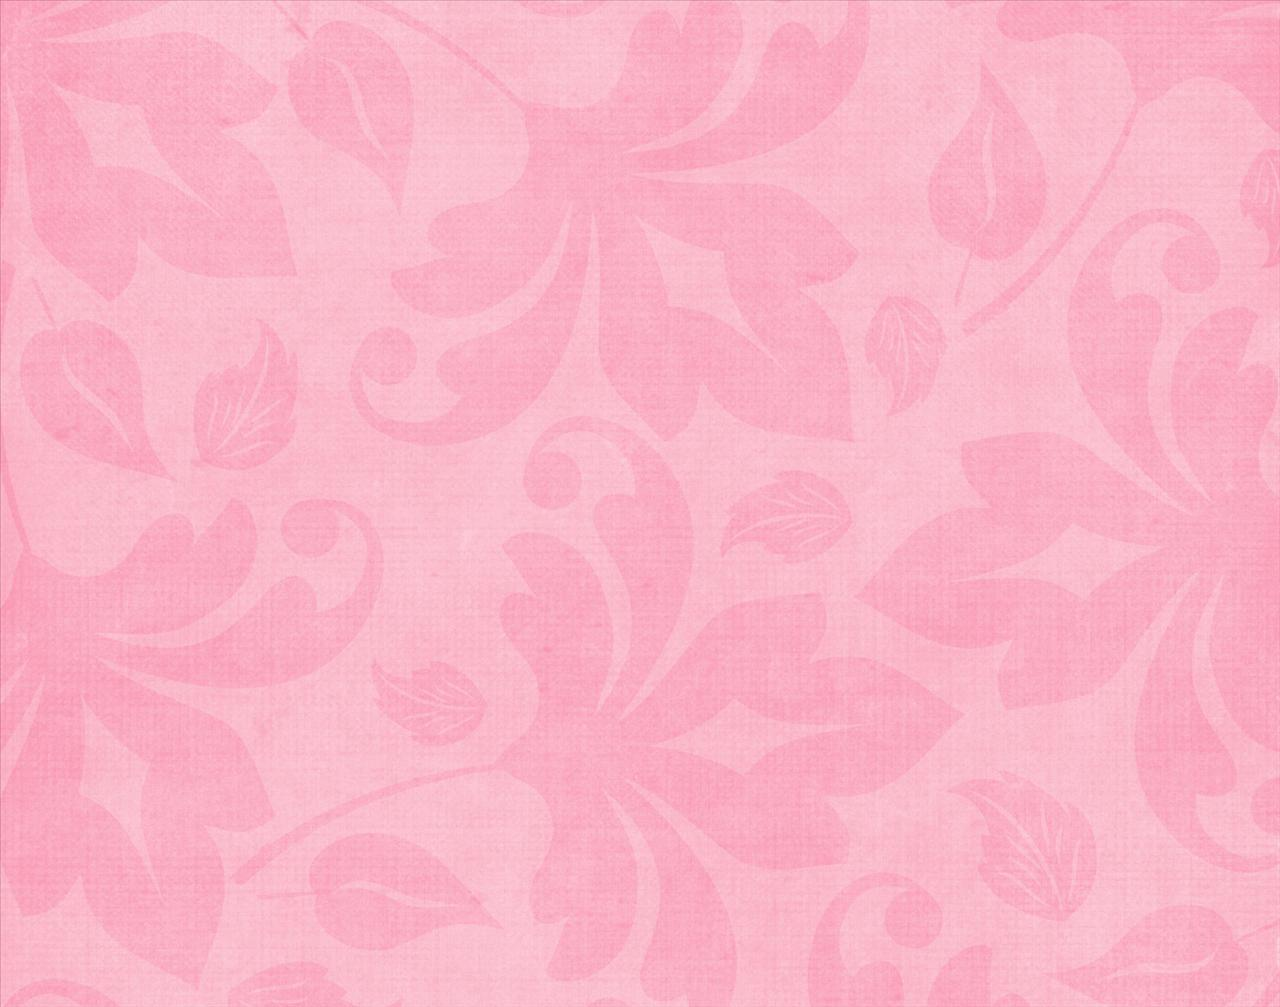 image backgrounds pink